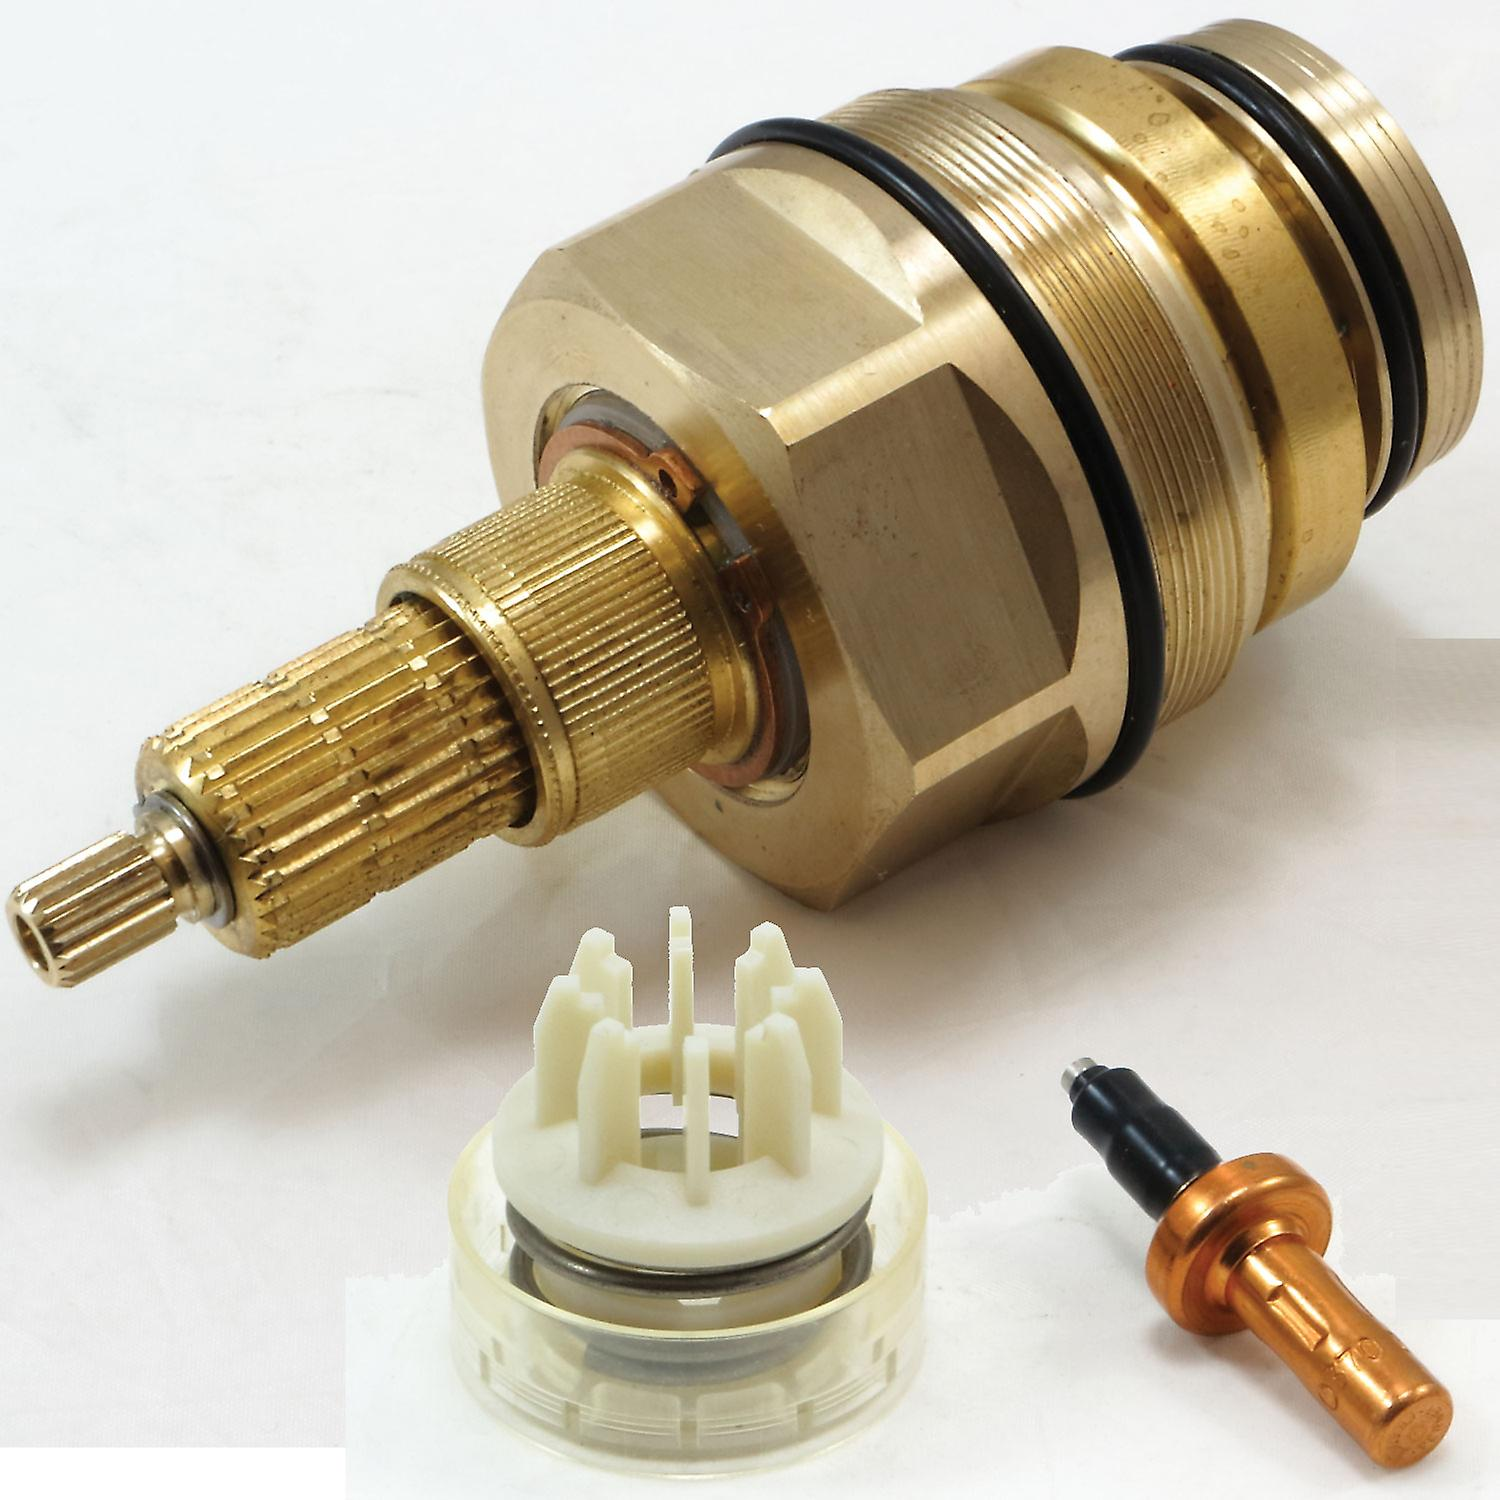 Grohe 47598000 Thermostatic Cartridge with Piston and Wax Element Control Unit for Avensys and Grohmaster Valves